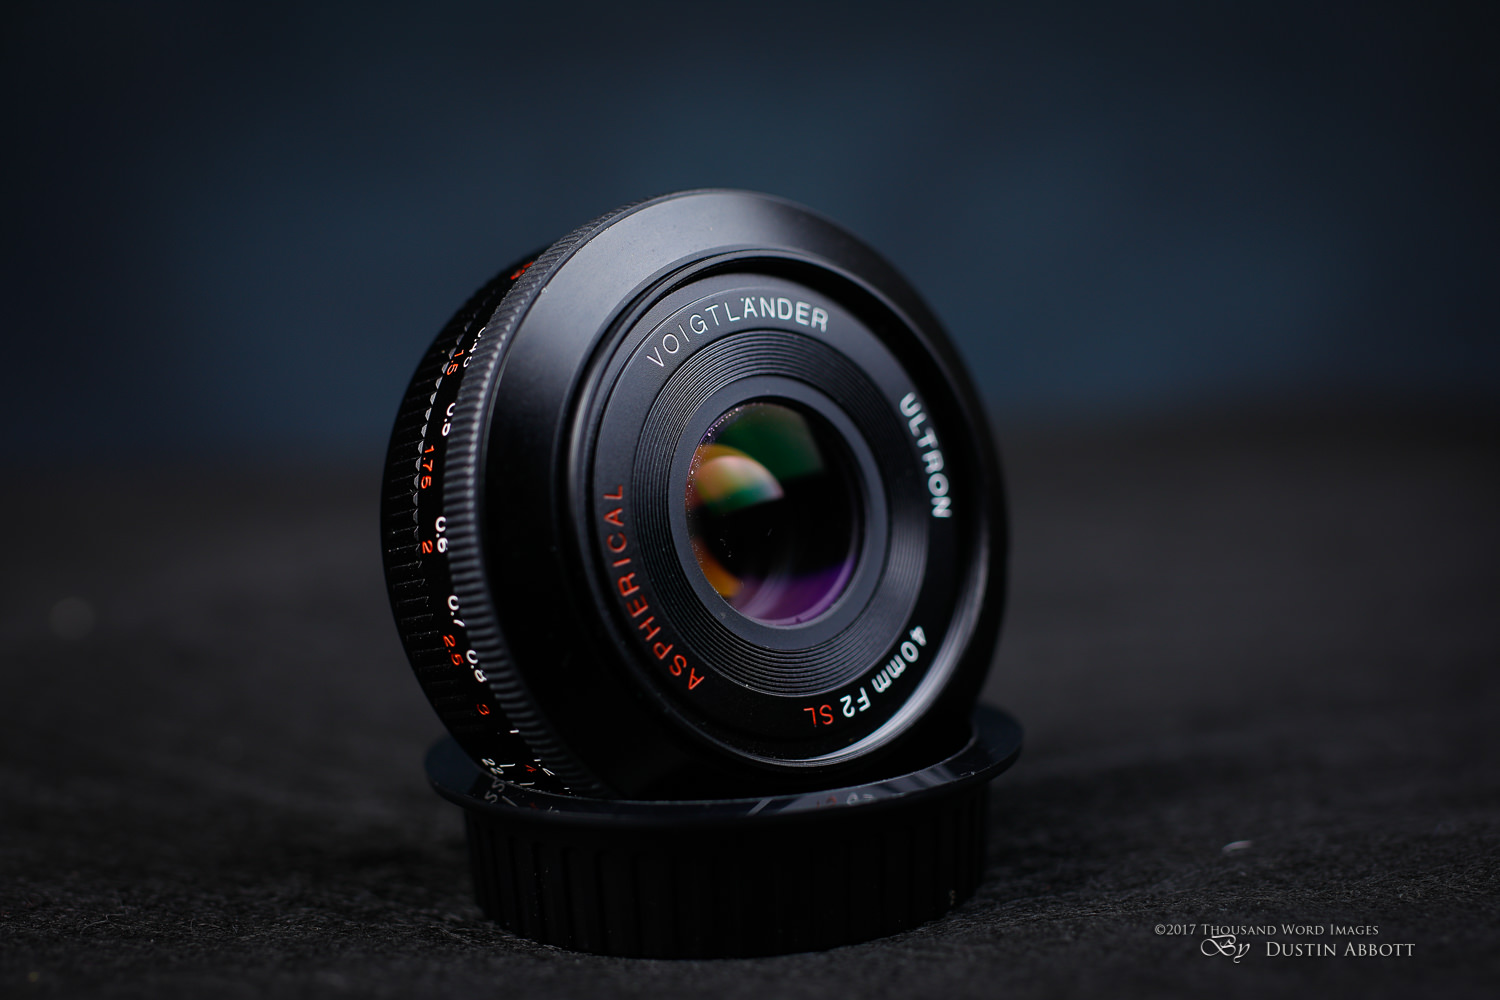 The Voigtlander 35 1.7 Ultron VM (Leica Mount) Lens Review ...